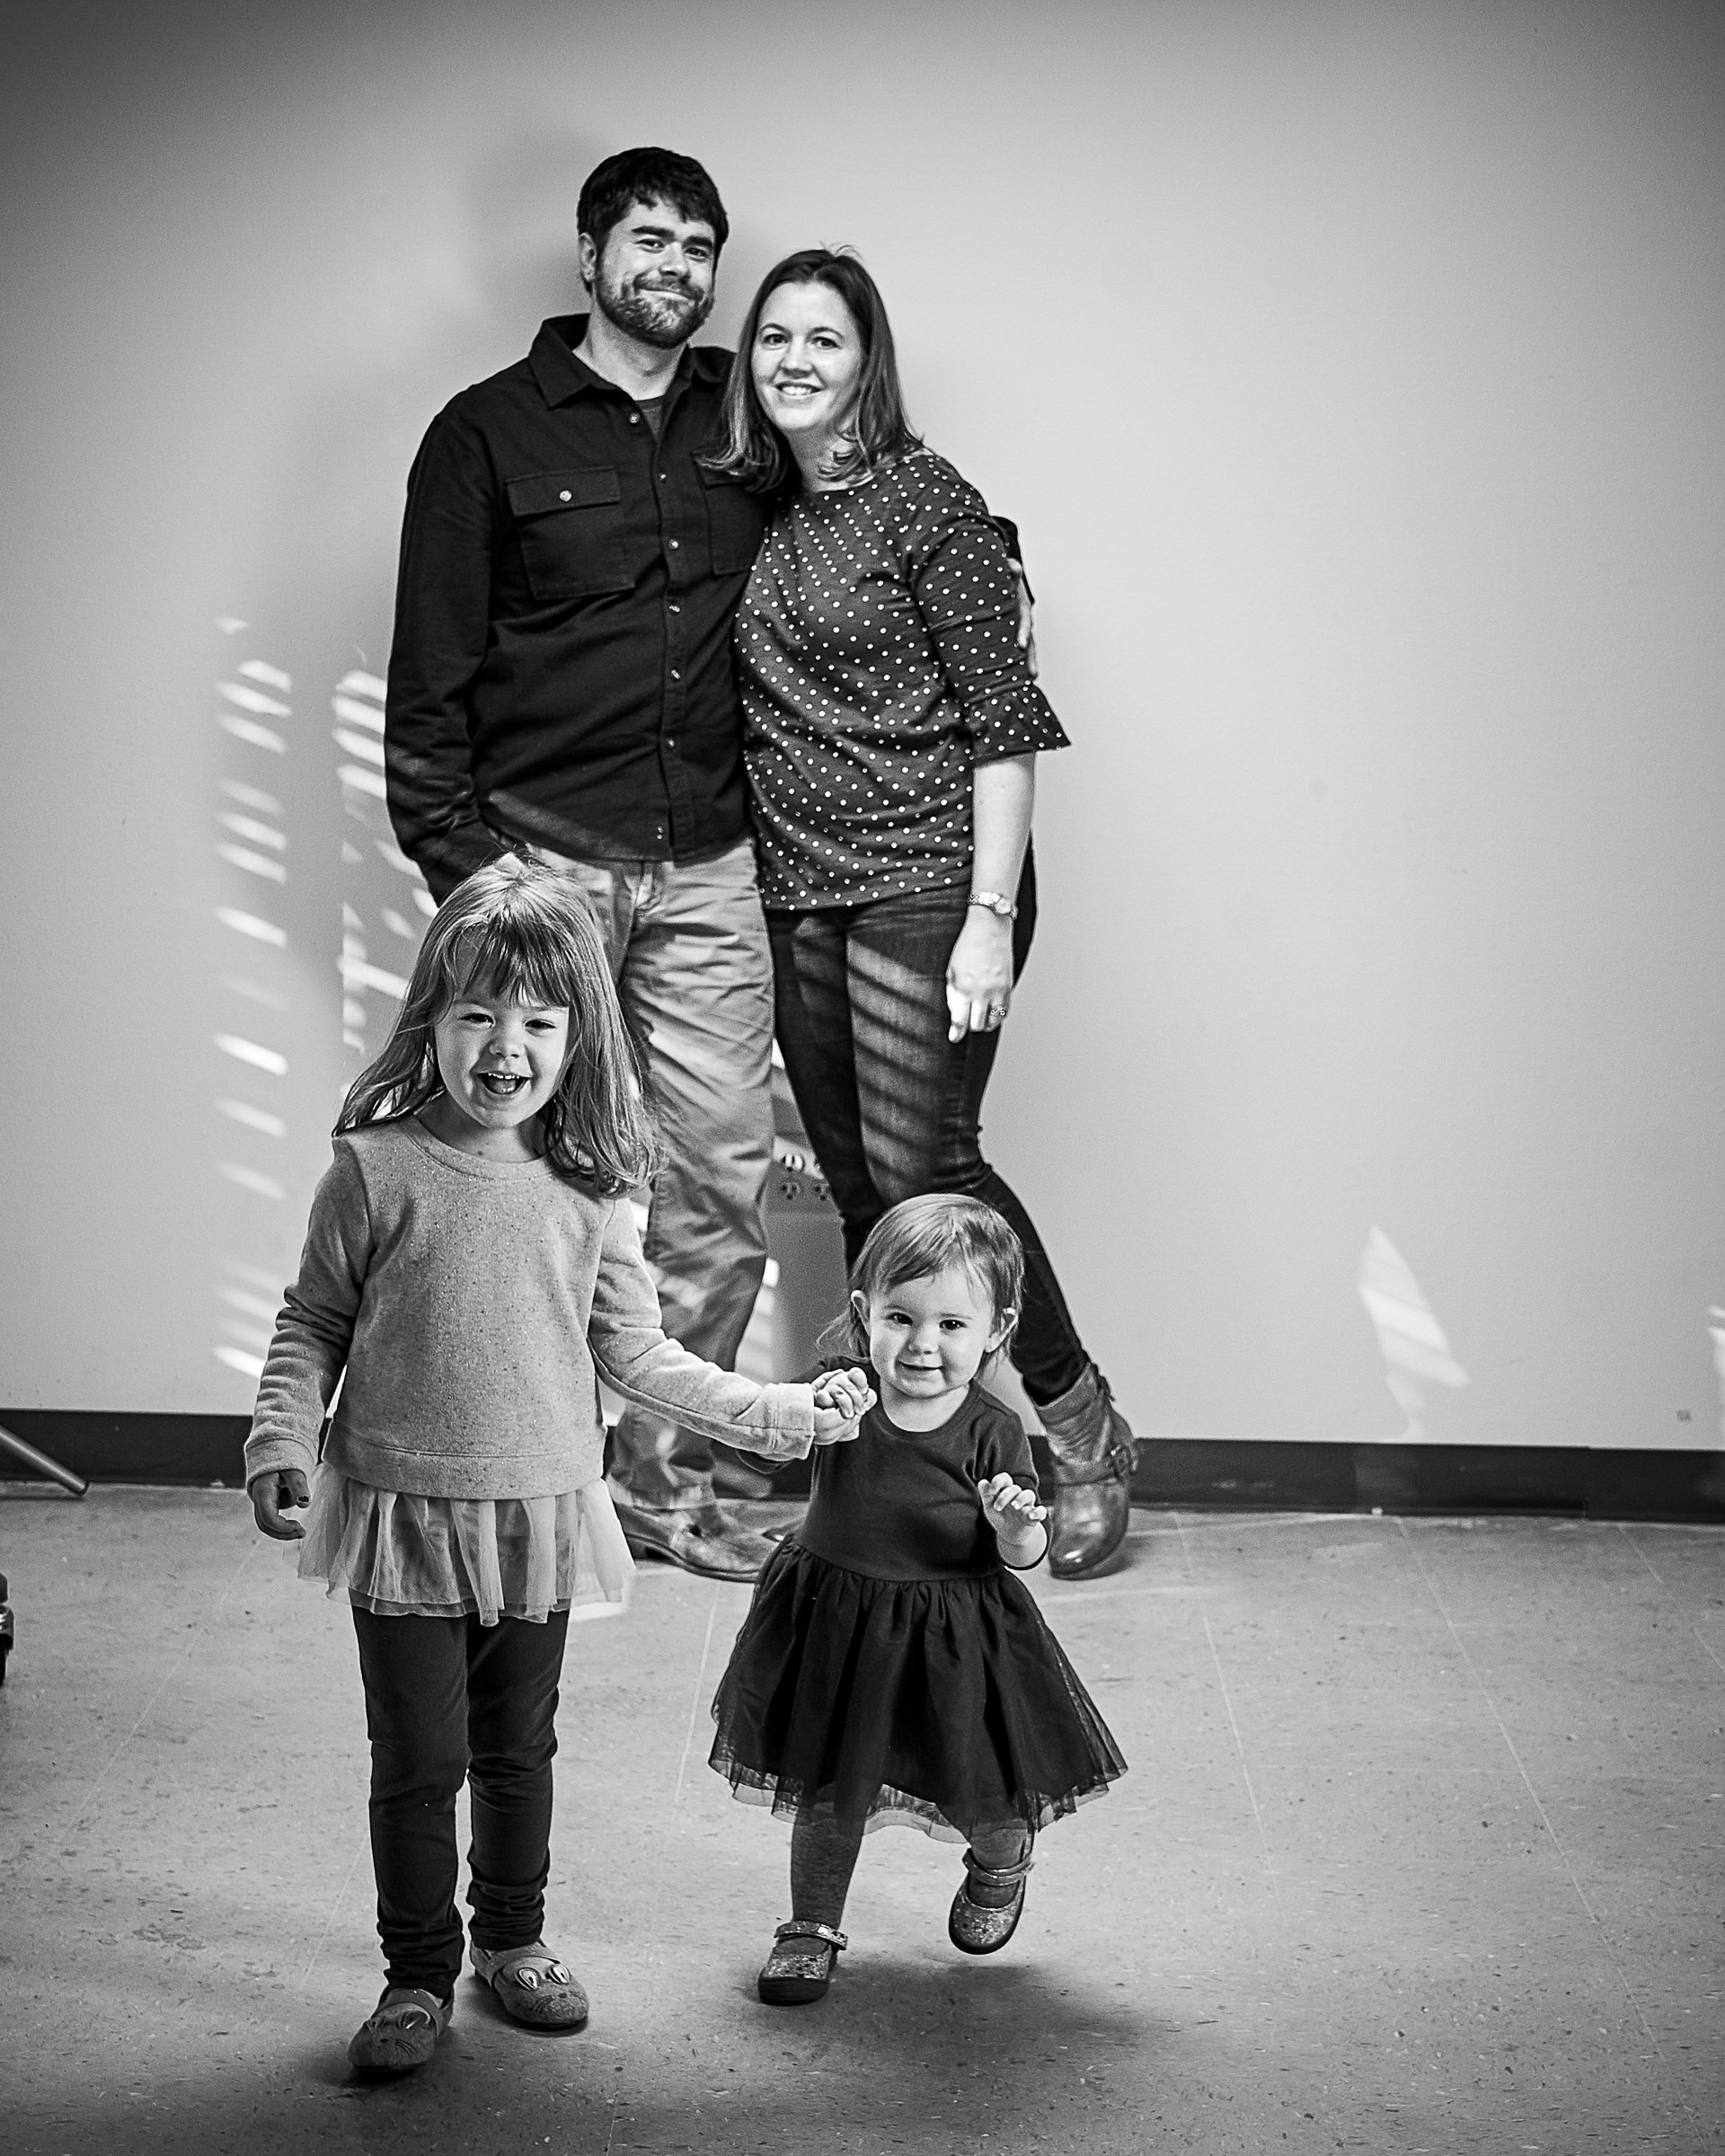 2018-12-15-Puls Familly4568-bw-proofs-retouched web.jpg